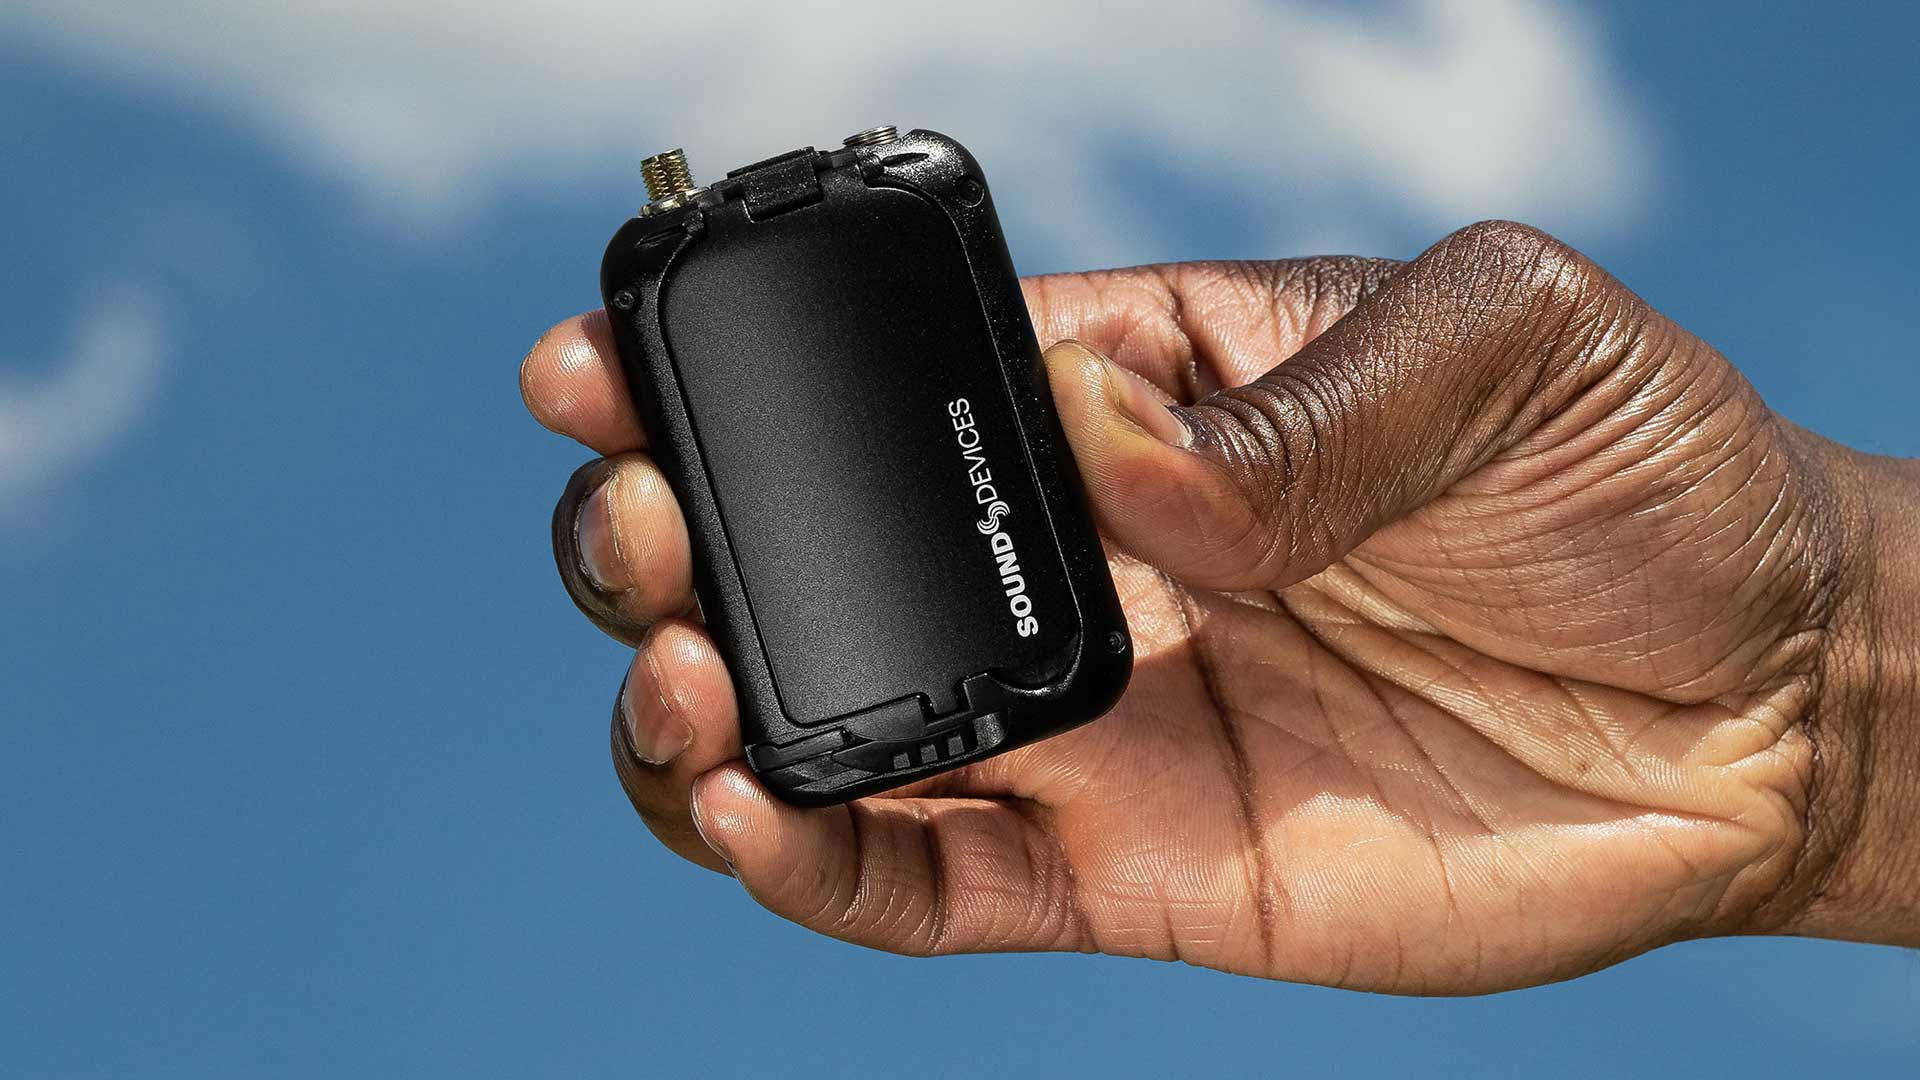 The new Sound Devices A20 Mini. Image: Sound Devices.